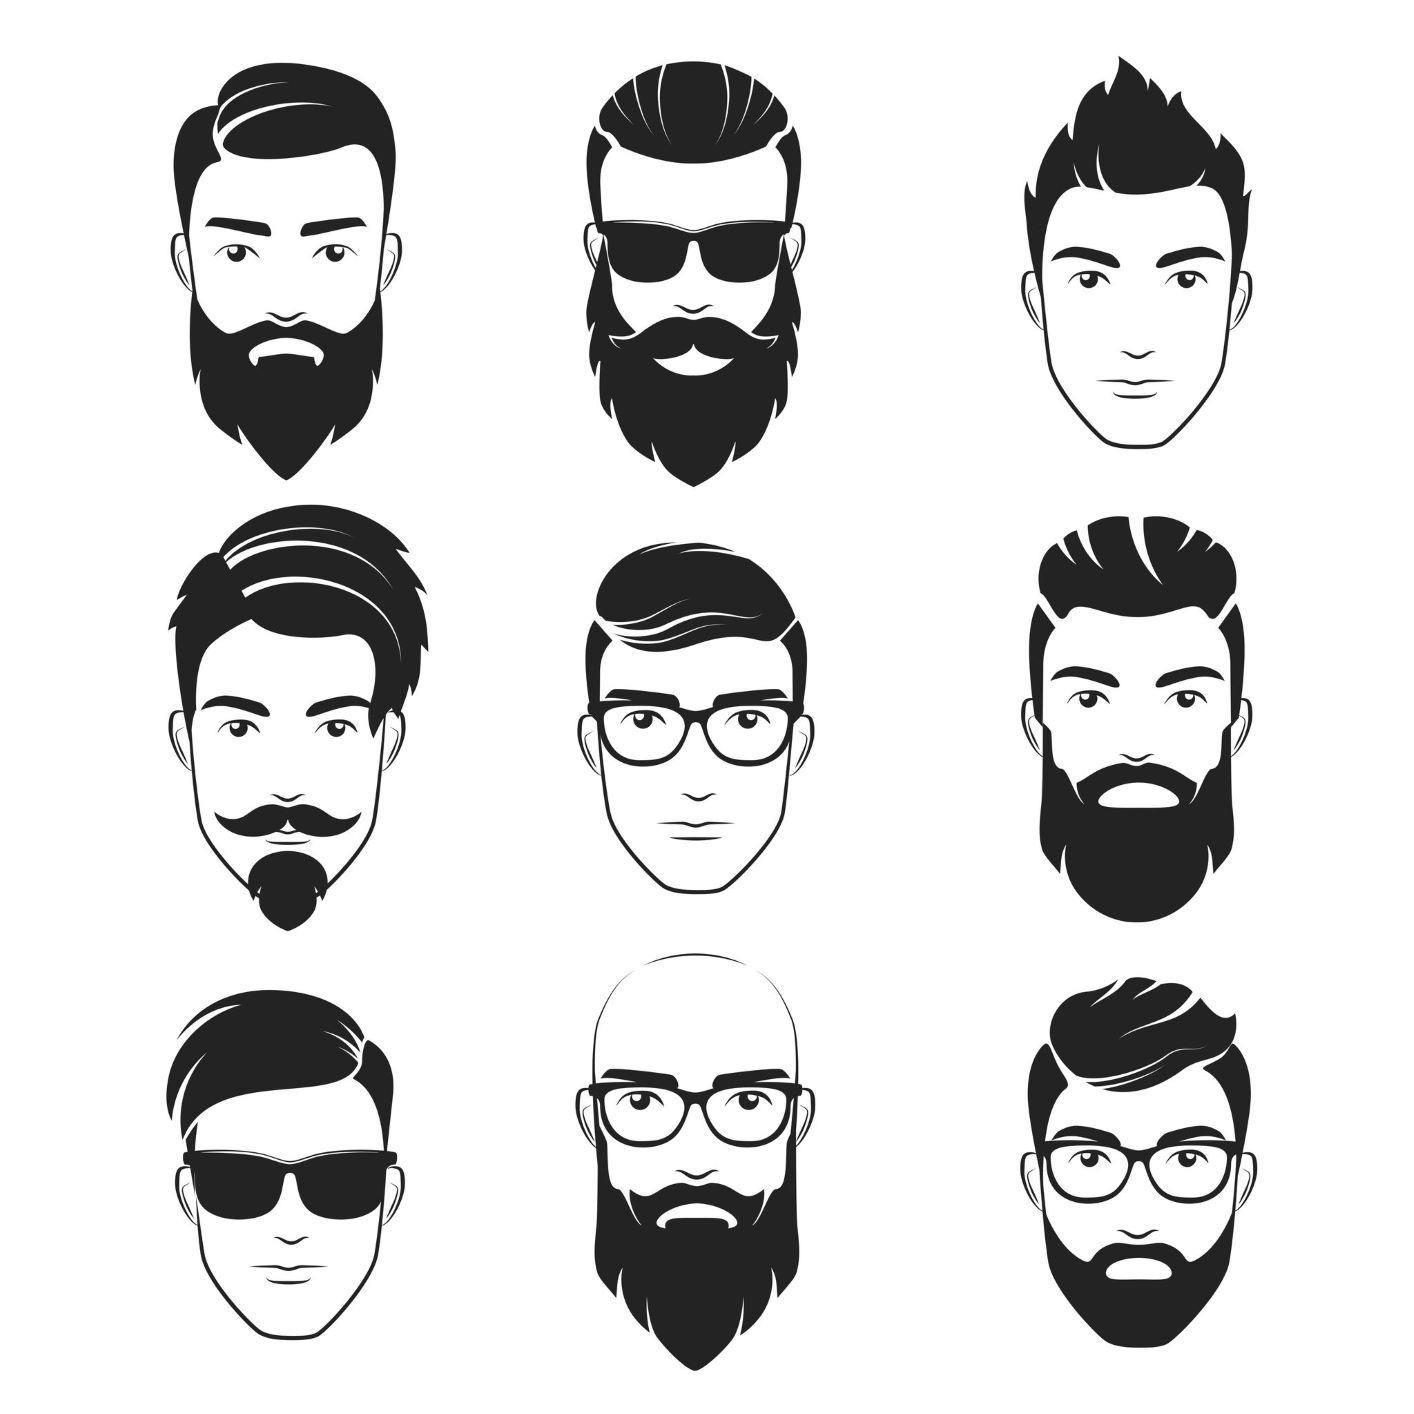 9x9 grid drawing of men with different hairstyles and facial hair